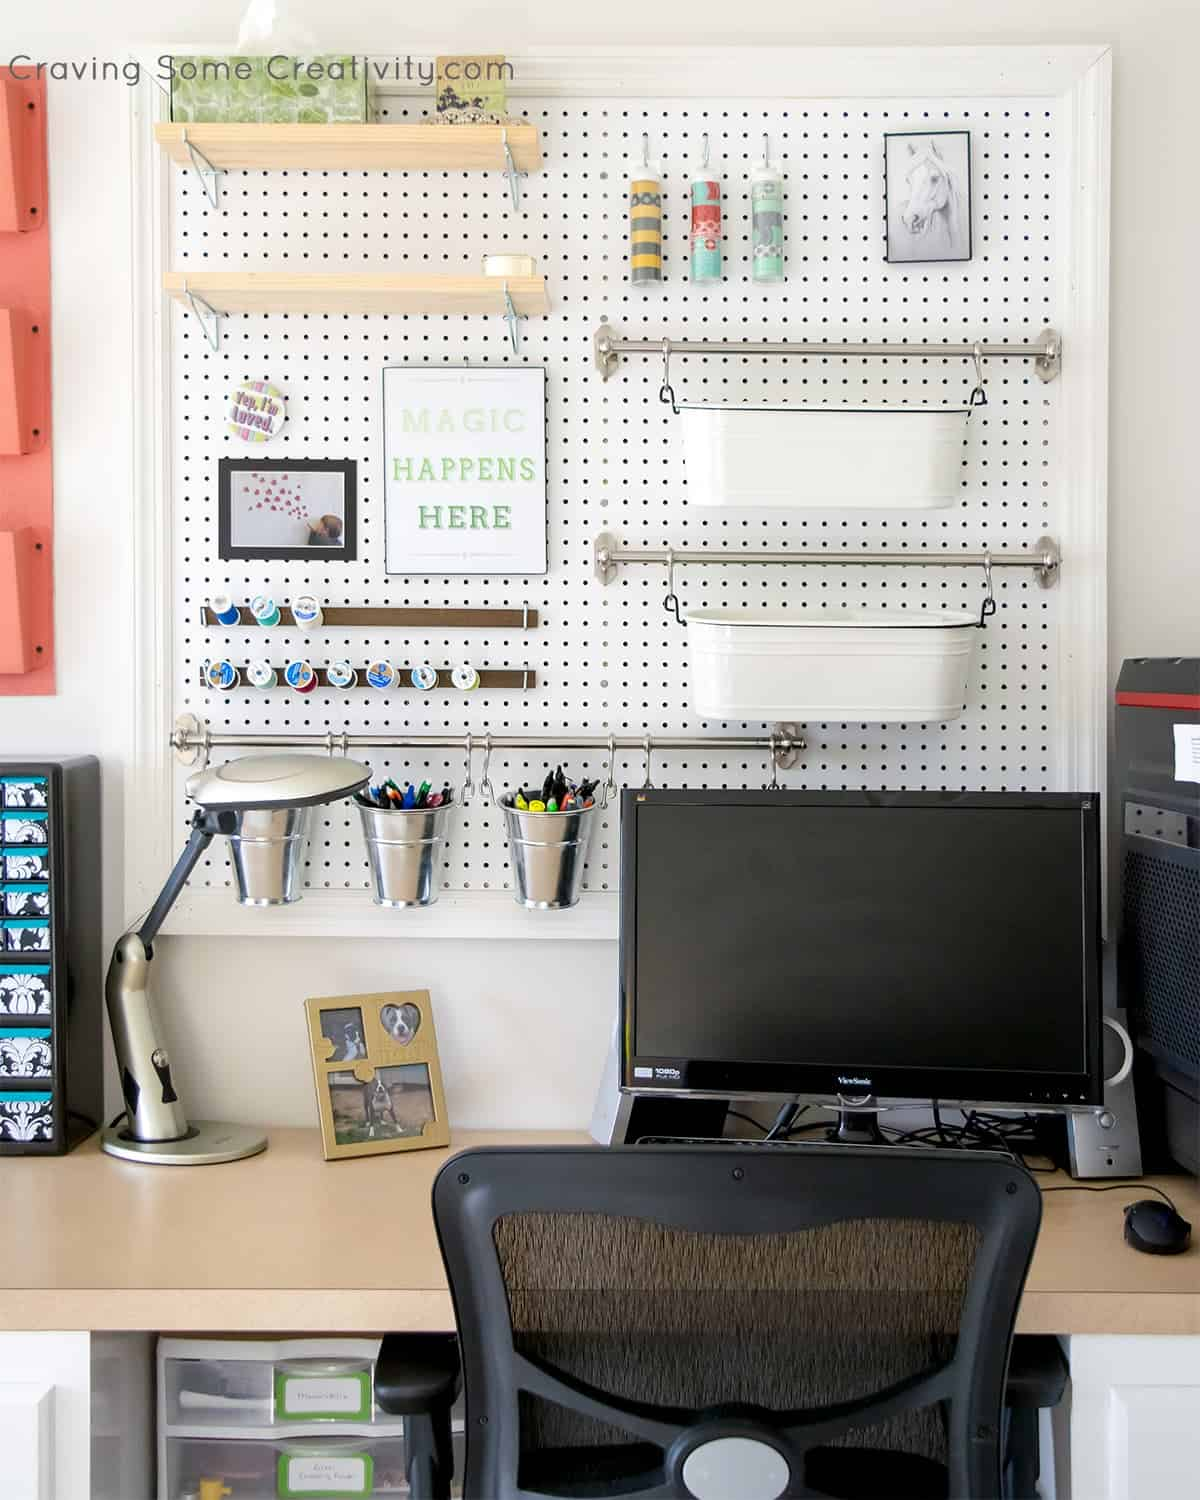 How to build a pegboard organizer for your office! It's easy!